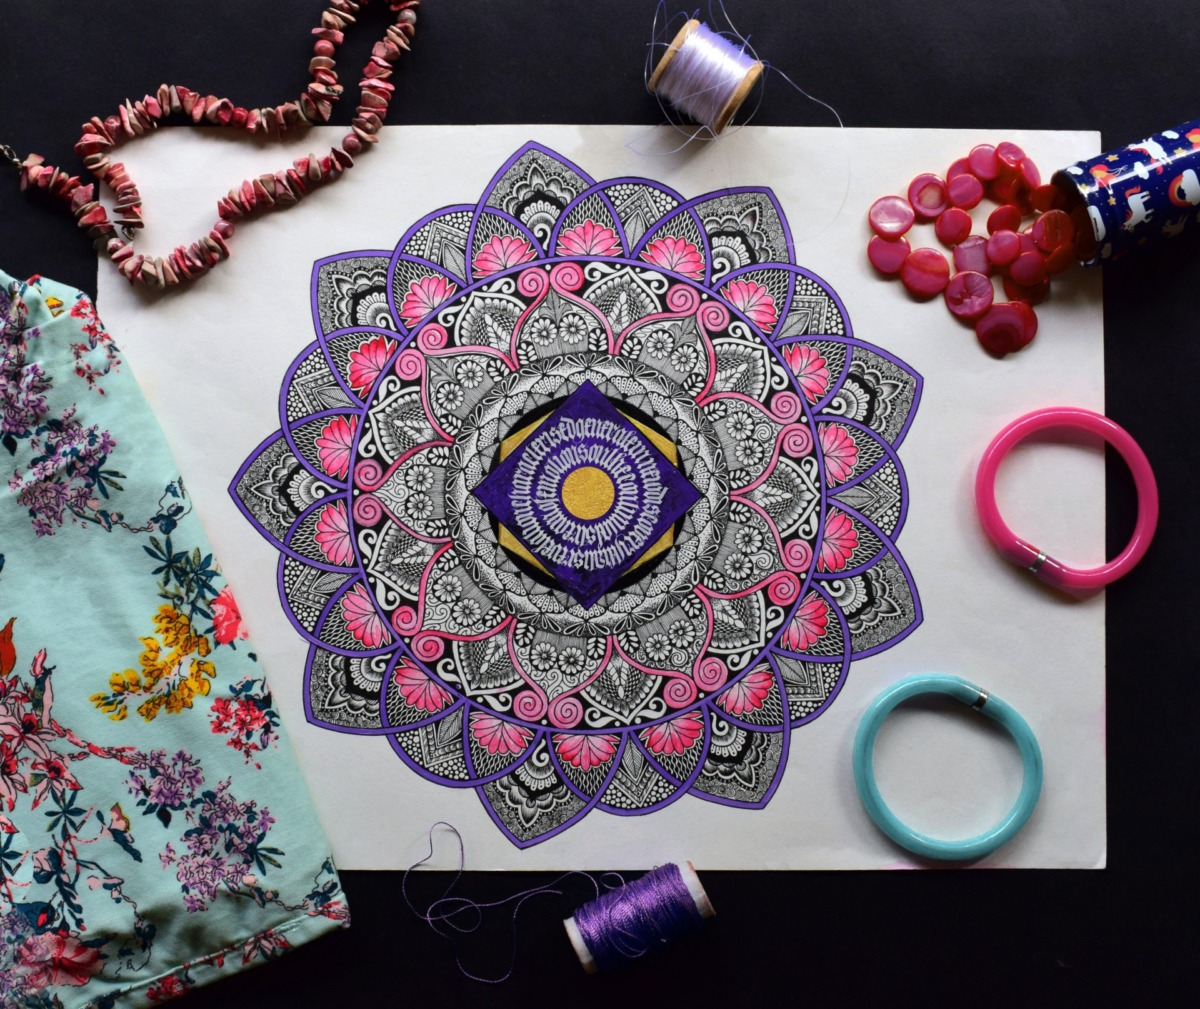 THINK House - Mandala Workshop: Çizim, Meditasyon ve Bilinçaltı Analizi